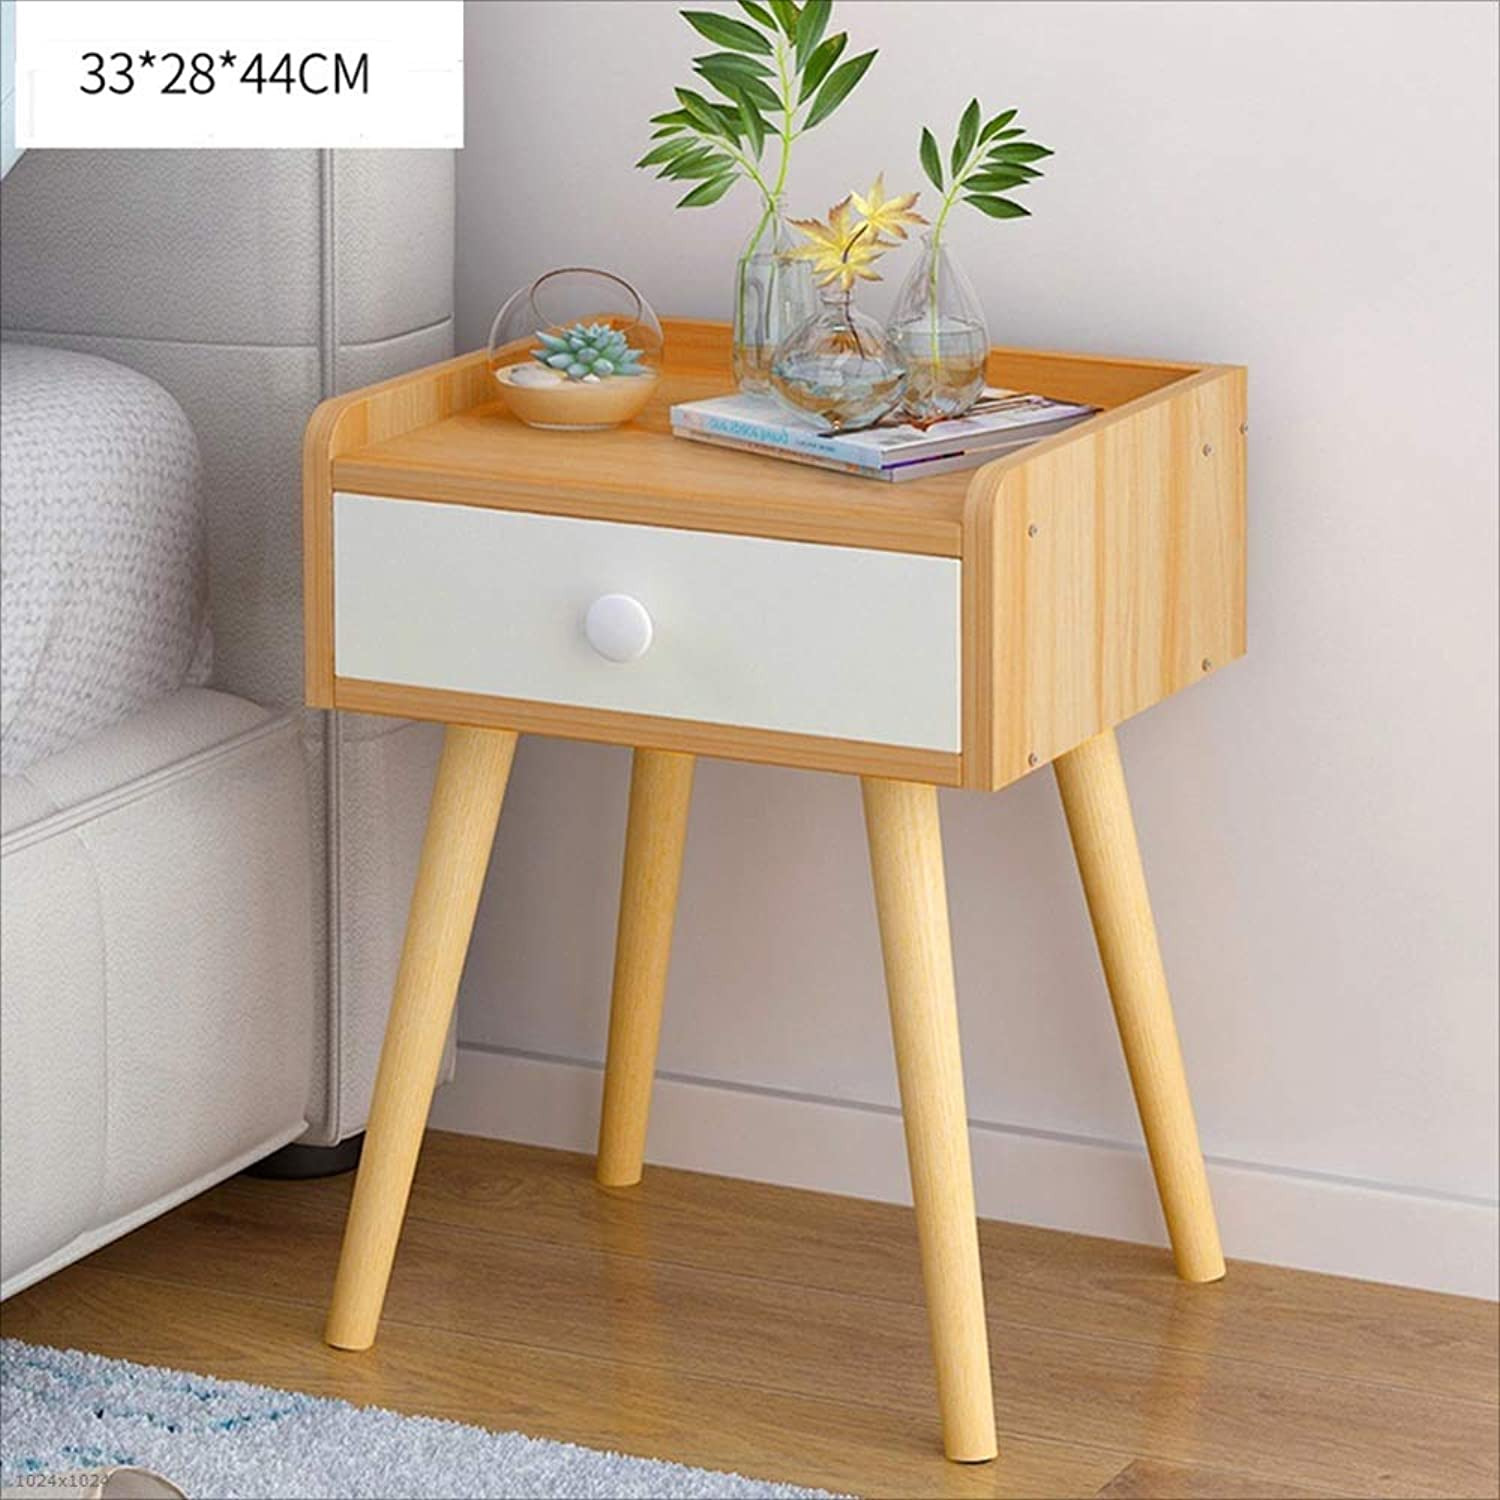 NAN Liang Bedside Table Cabinet White Drawer Wooden Night Stand Modern Nightstand Storage Cabinet with 4 Wooden Legs Storage Unit (color   Walnut, Size   33  28  44CM)